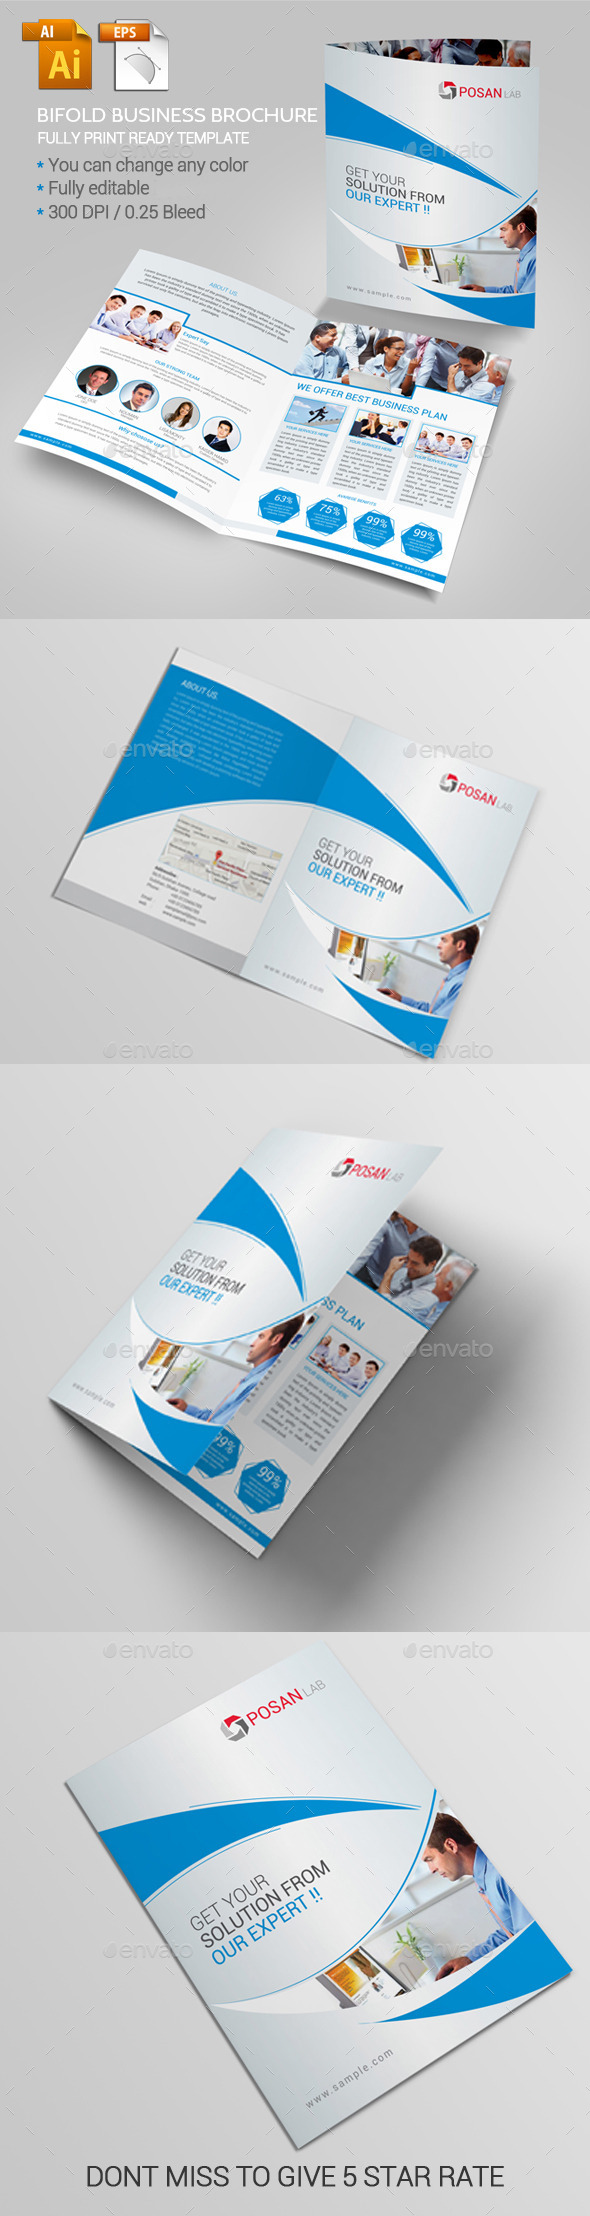 GraphicRiver Bifold Business Brochure 11362689